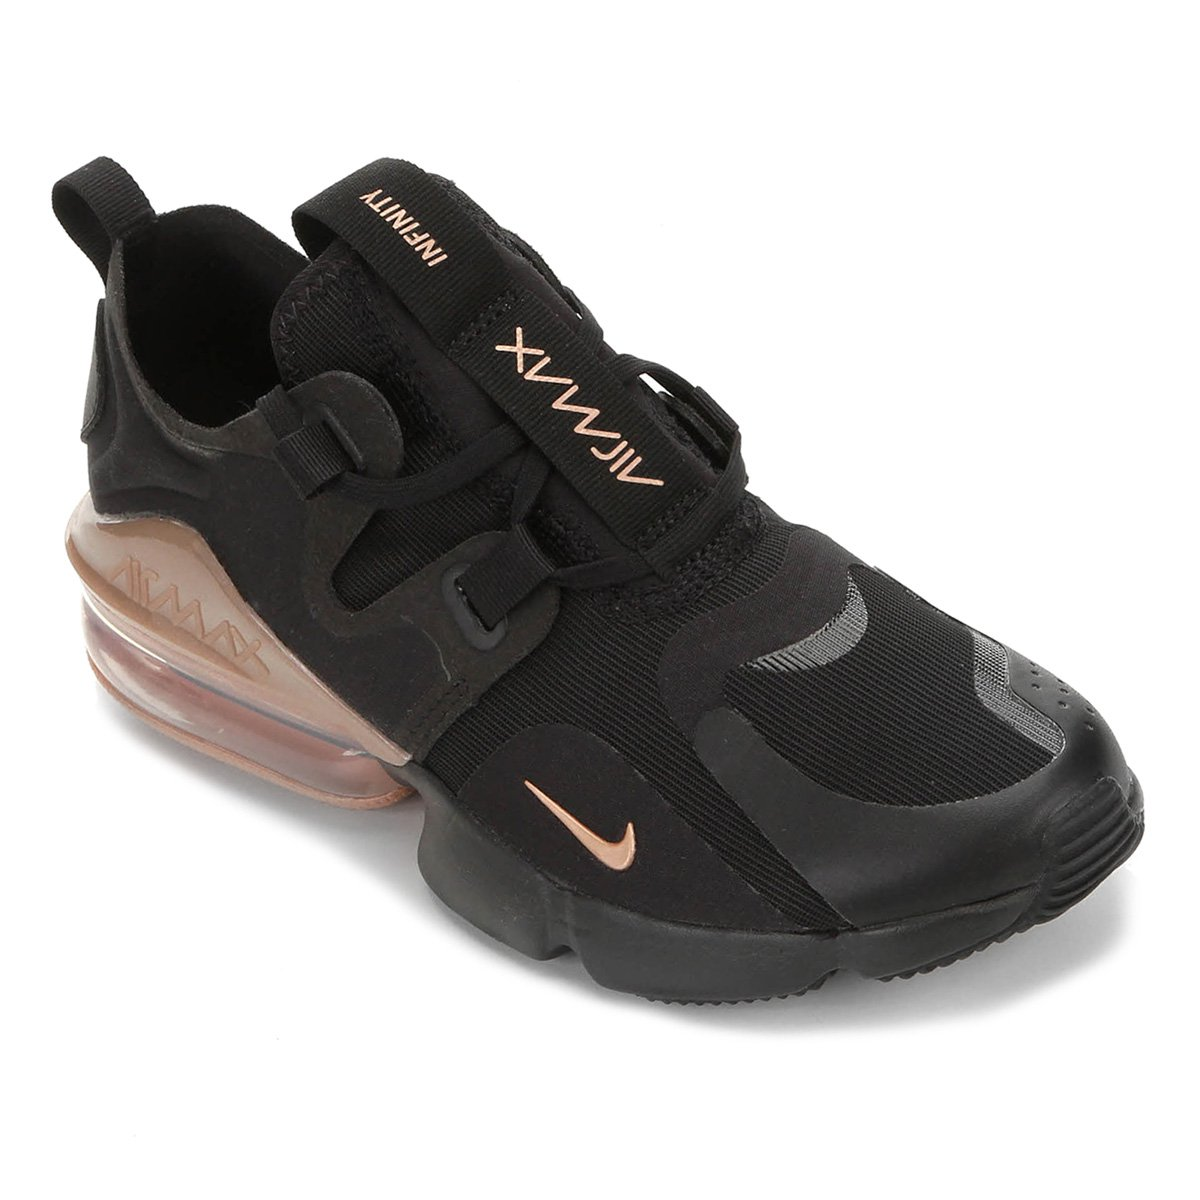 Compre Nike Air Max Online | Netshoes